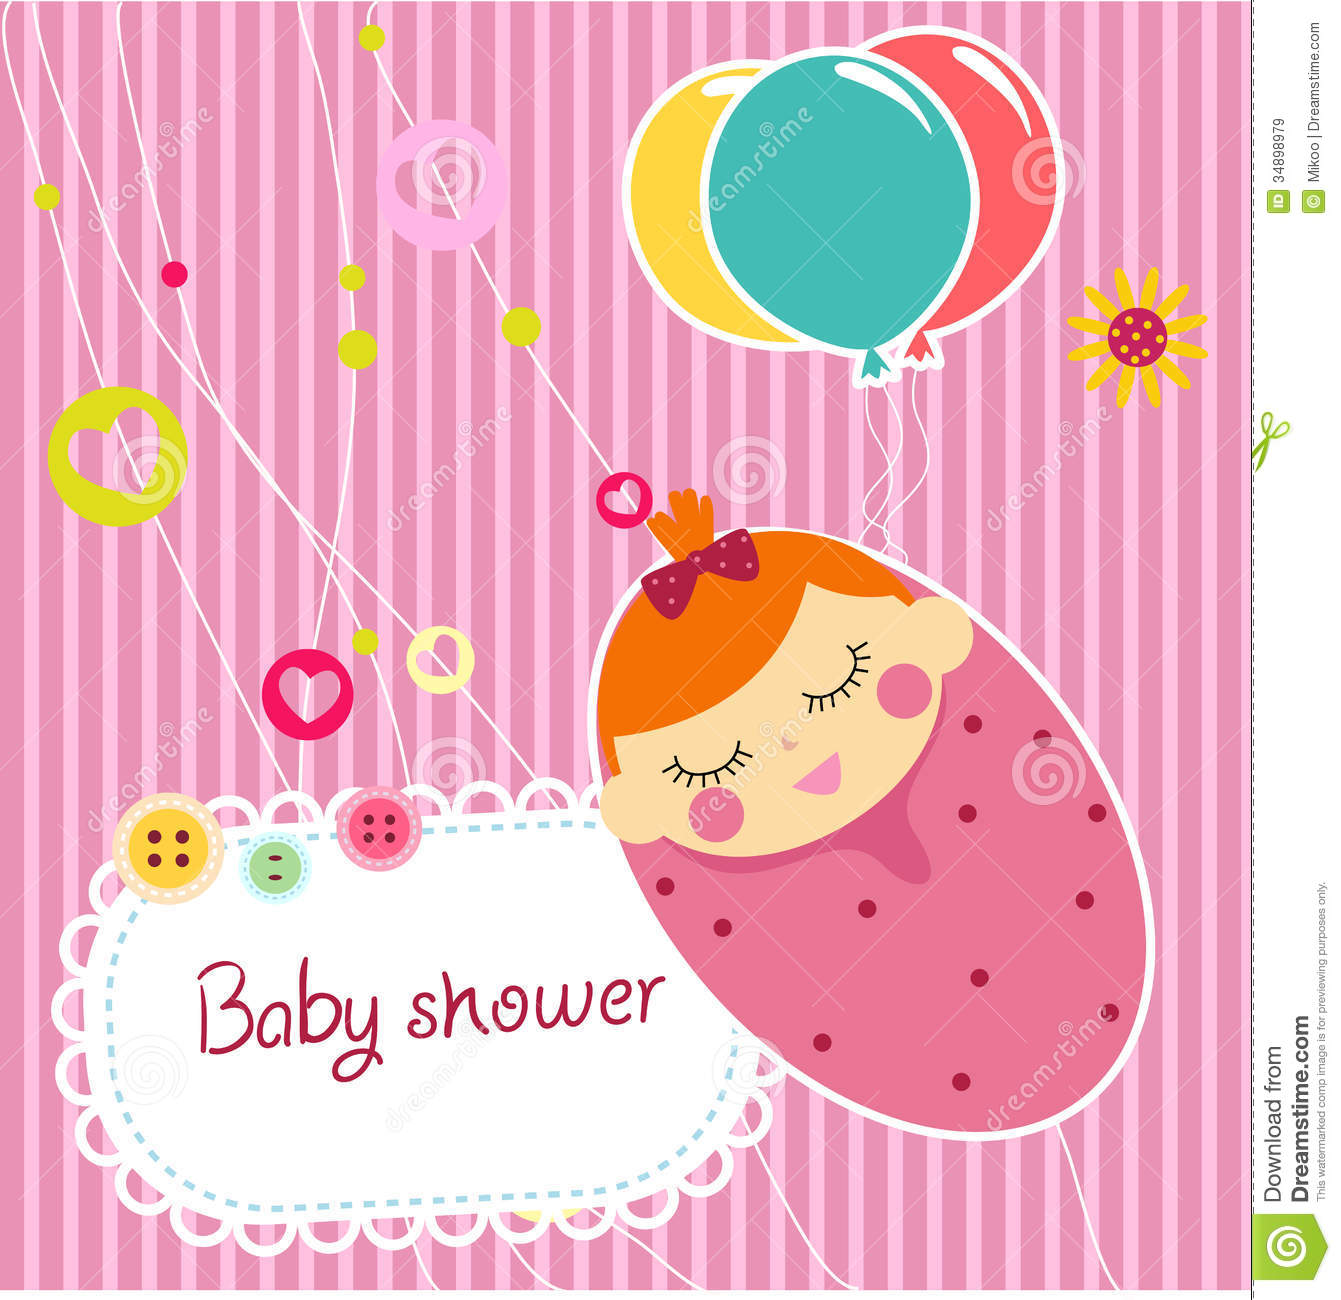 Baby Shower Cartoon Images ~ Baby shower card royalty free stock images image